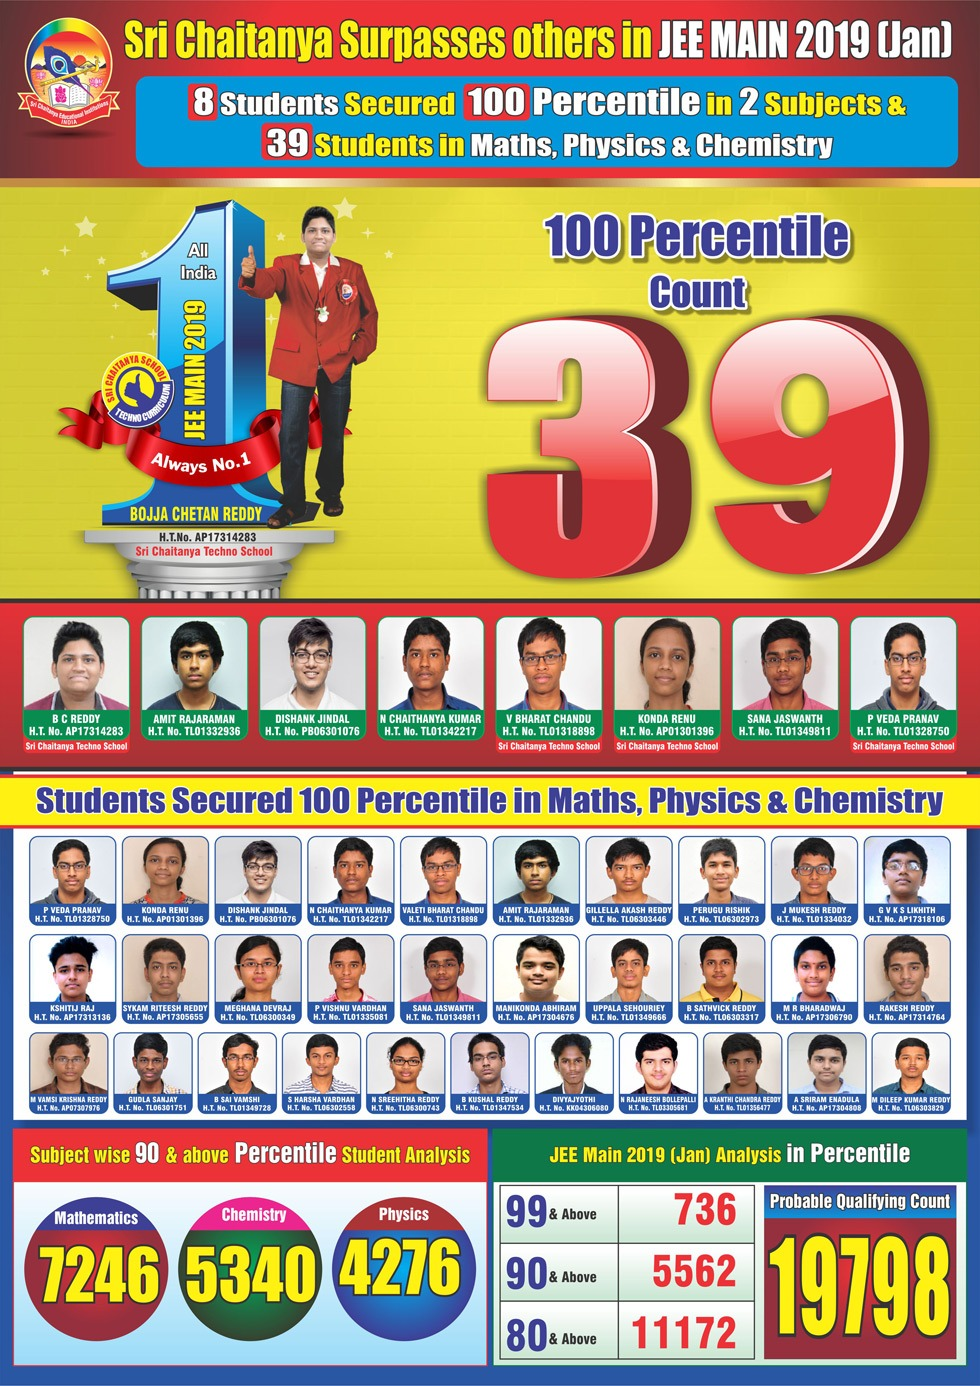 JEE Main 2019 Results - Sri Chaitanya